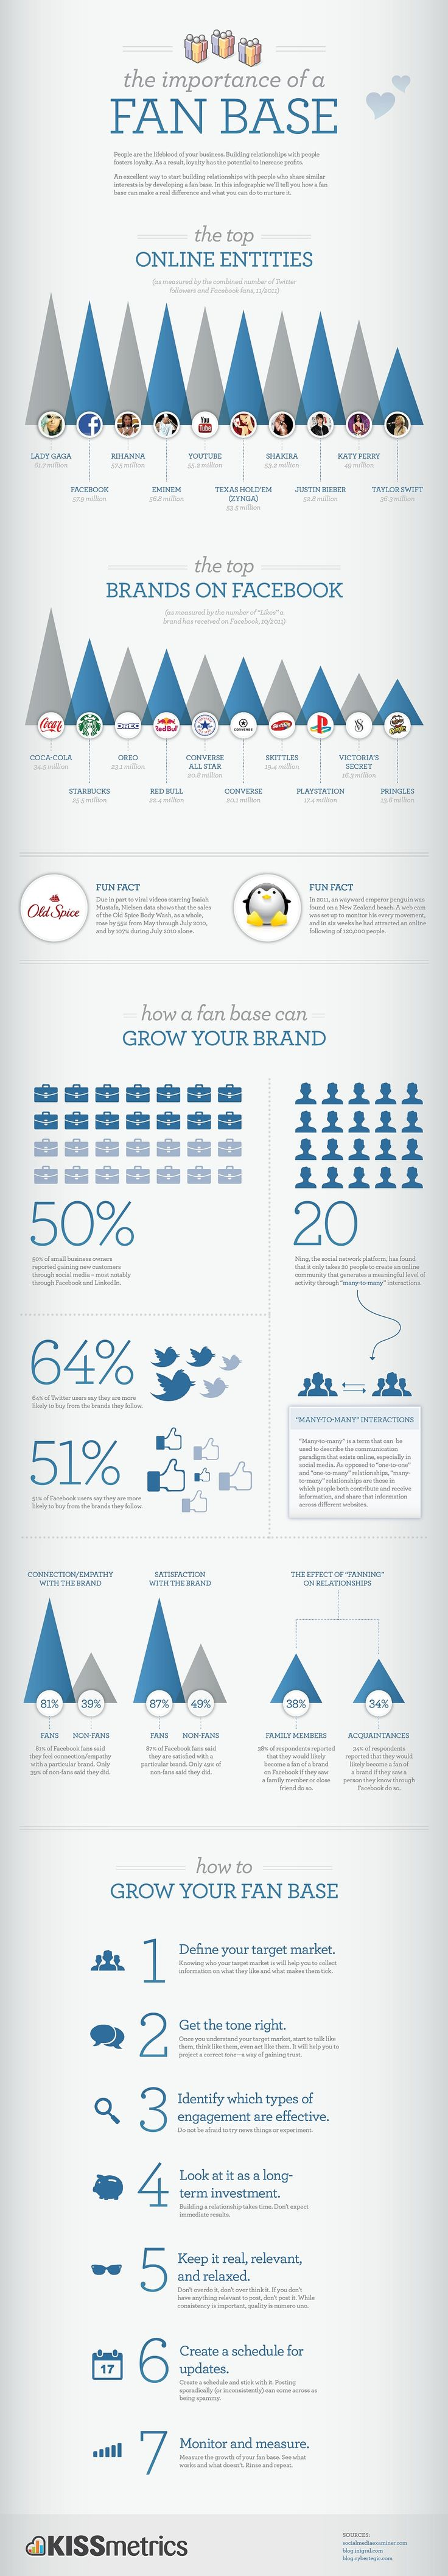 This information is not exactly true for small brands or indie companies, but it's an interesting graphic nonetheless.